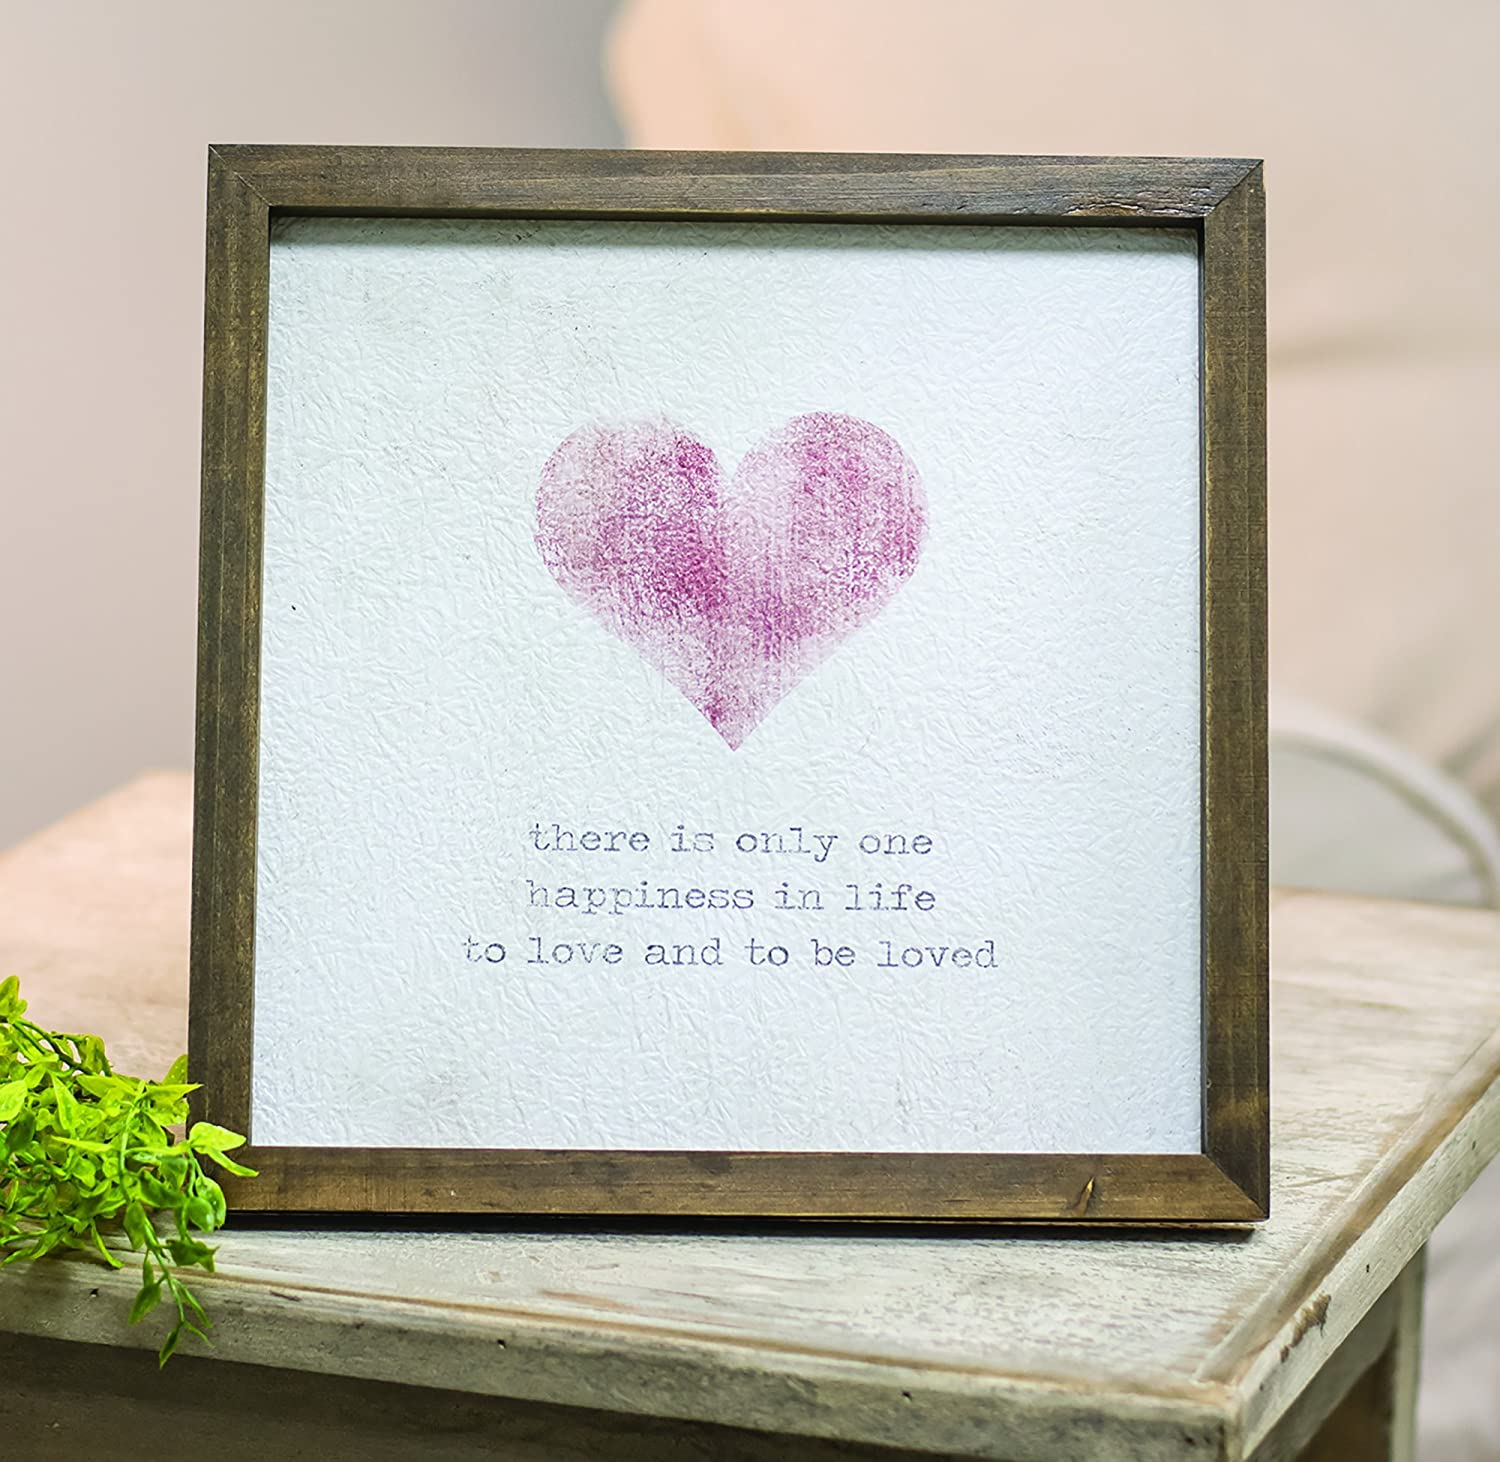 CWI Gifts One Happiness Framed Watercolor Easel Print Multicolored